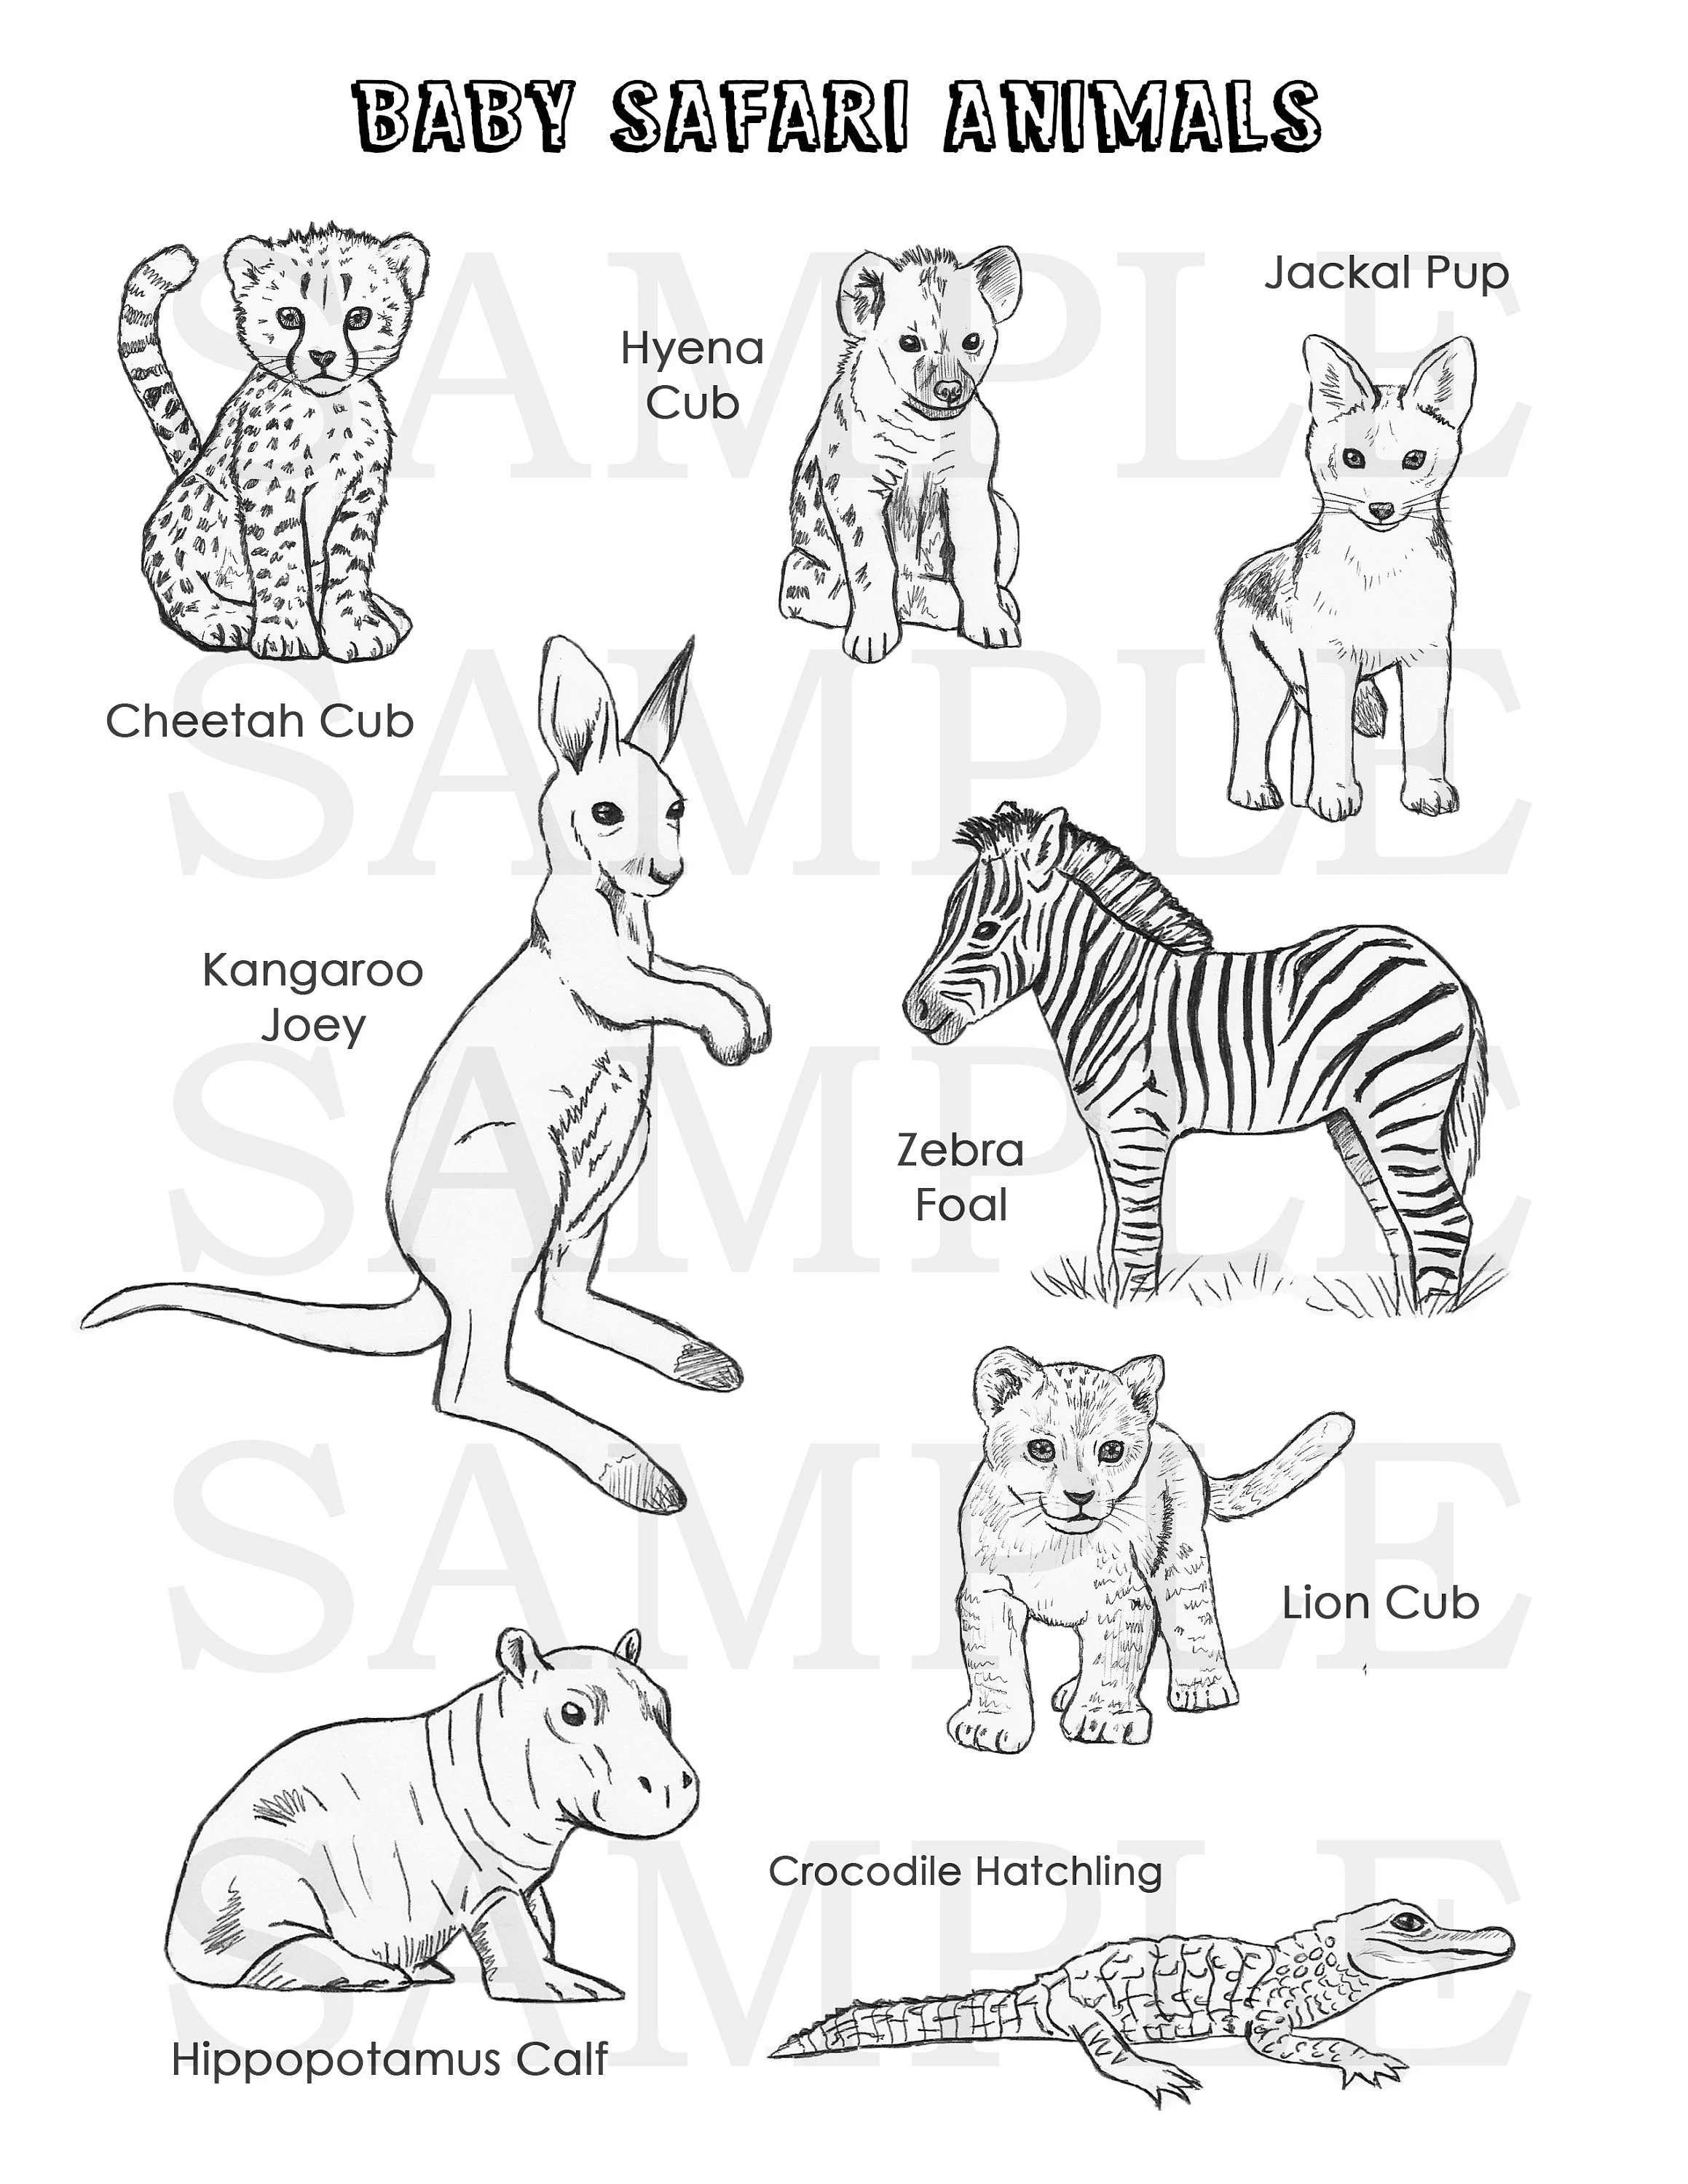 Safari Animal Coloring Pages : safari, animal, coloring, pages, Safari, Animals, Coloring